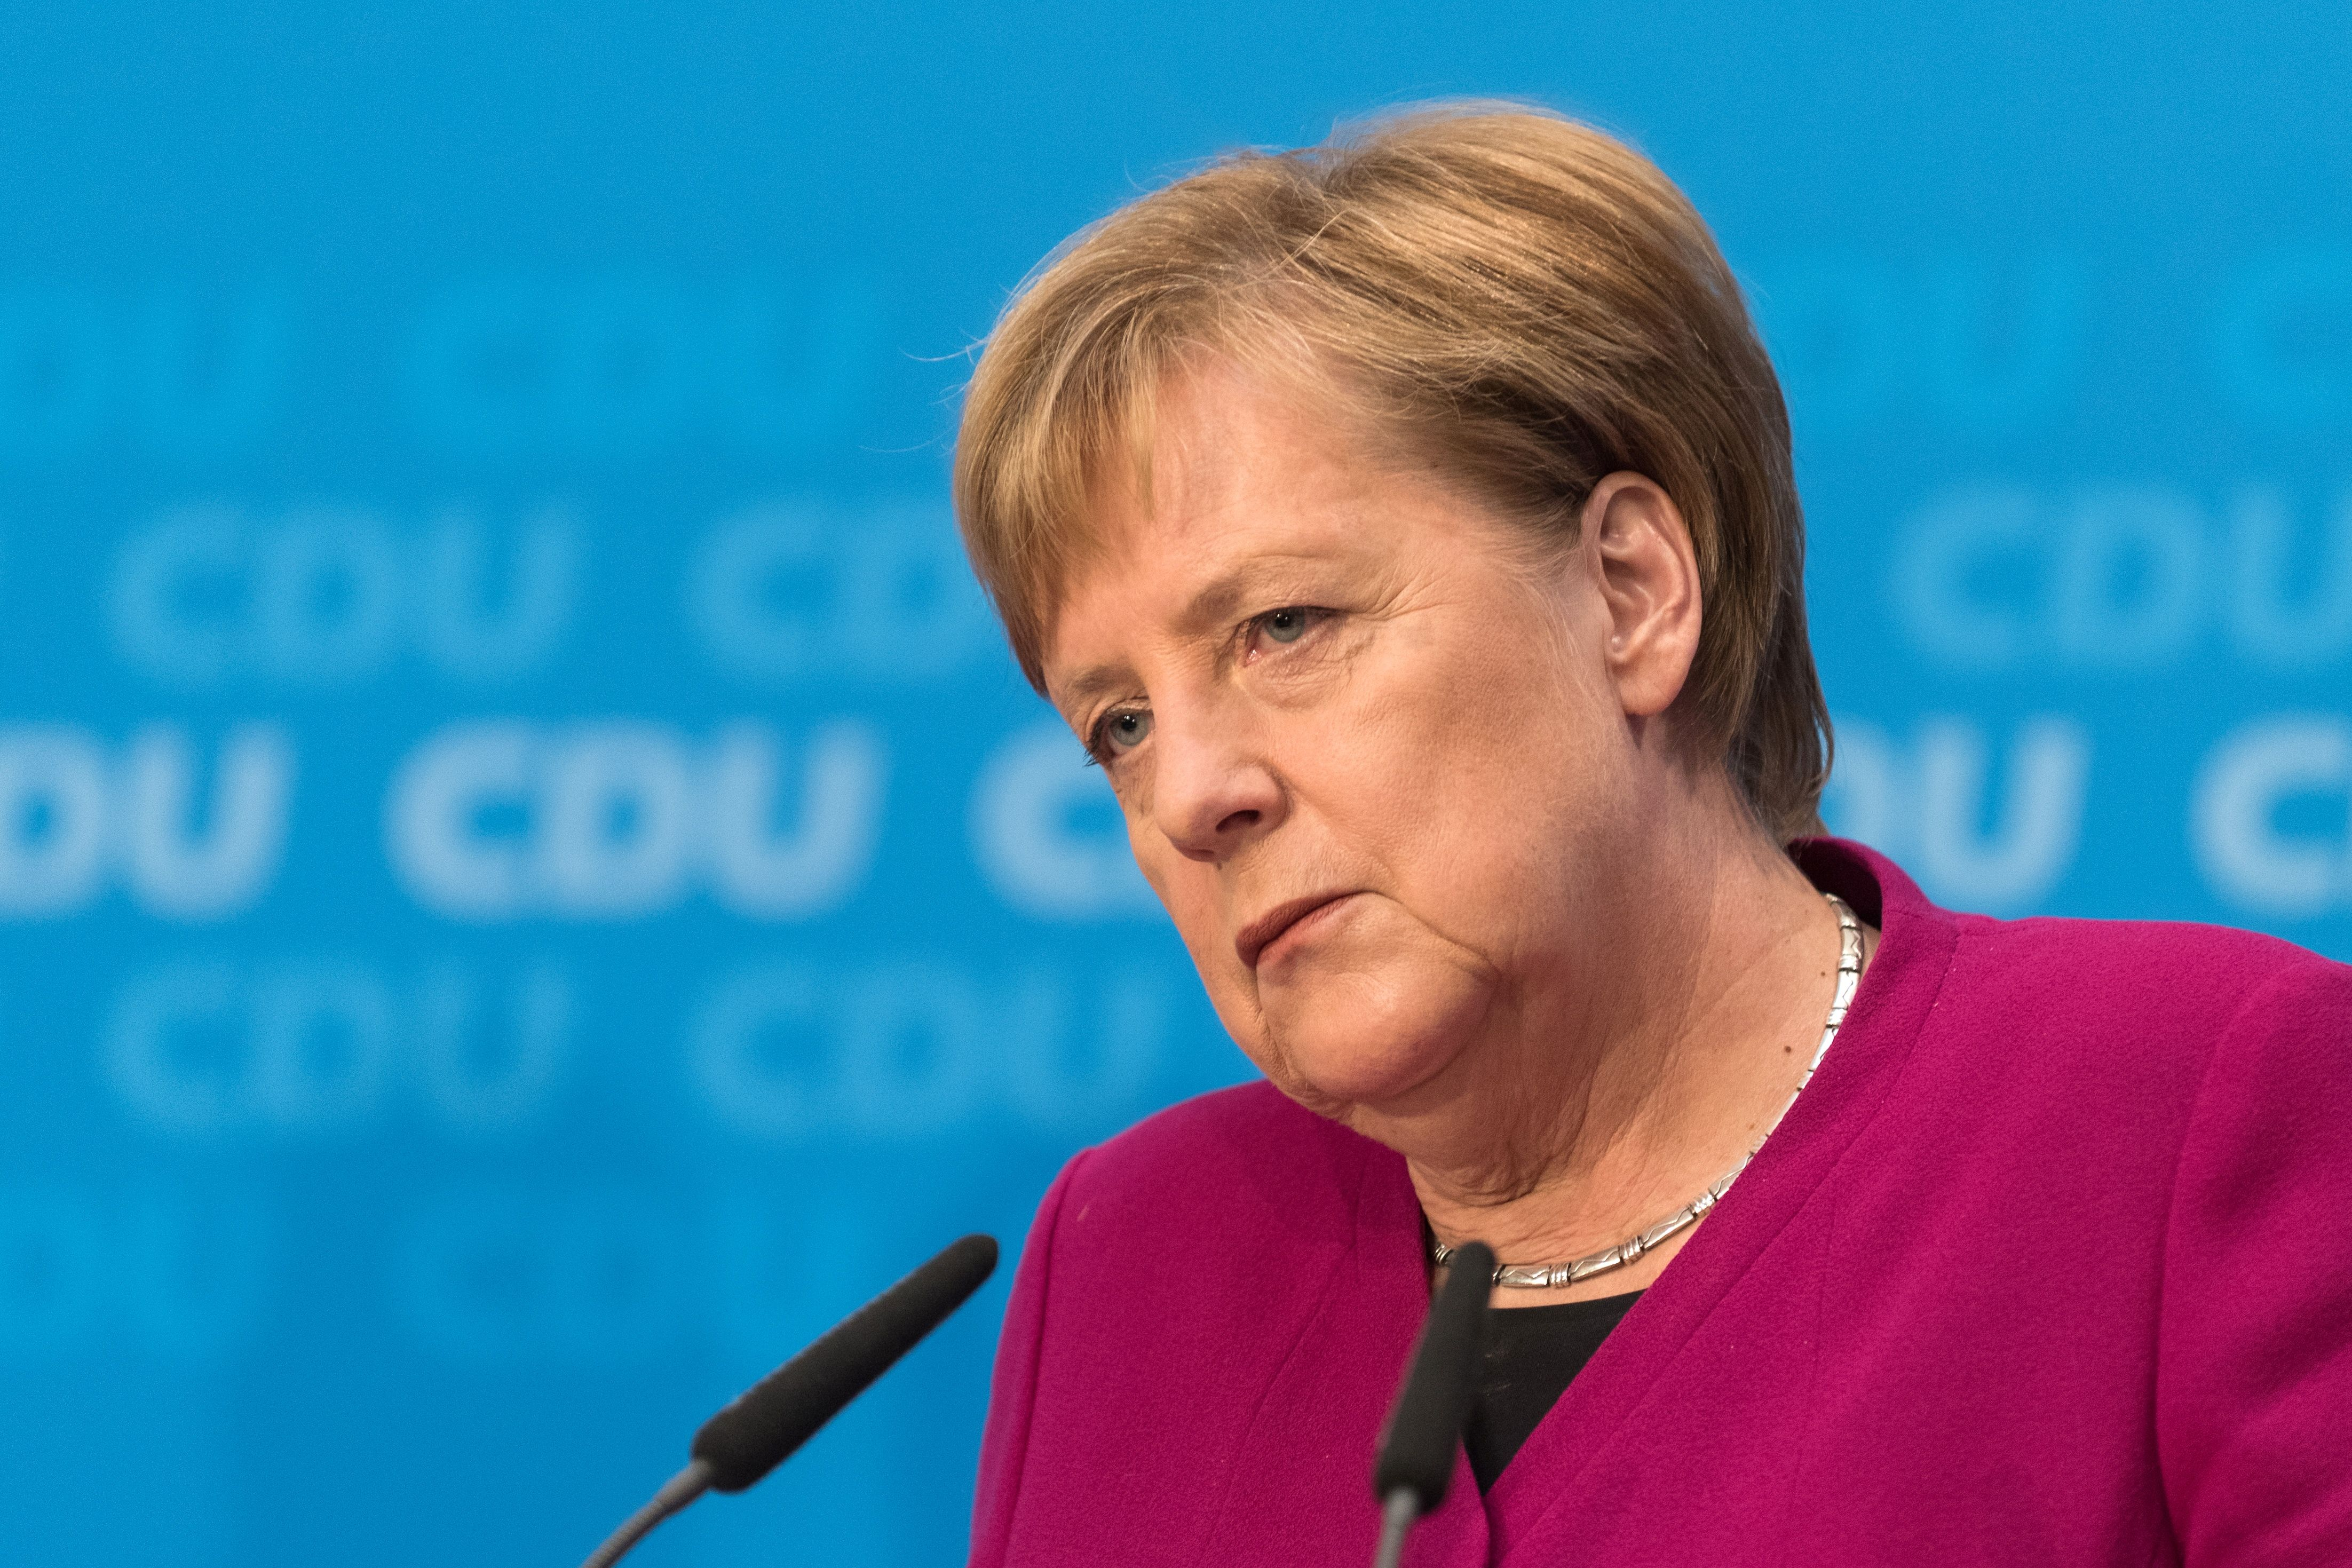 Germany Rejects US' Call To Send Troops To Syria